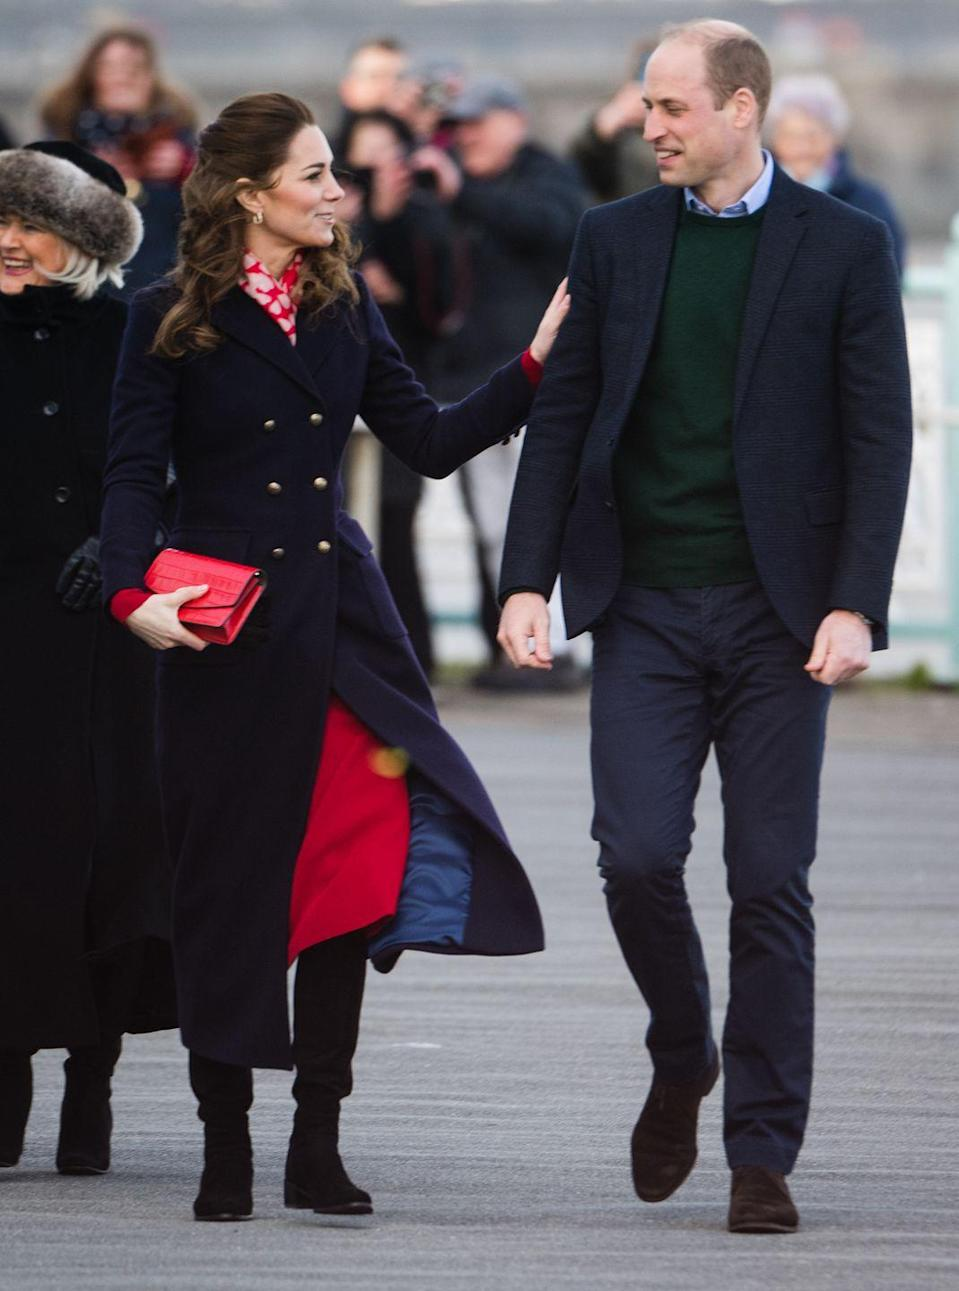 <p>The Duchess of Cambridge put a loving hand on her husband's arm during their visit to Mumbles Pier on February 4, 2020 in Swansea, Wales.</p>